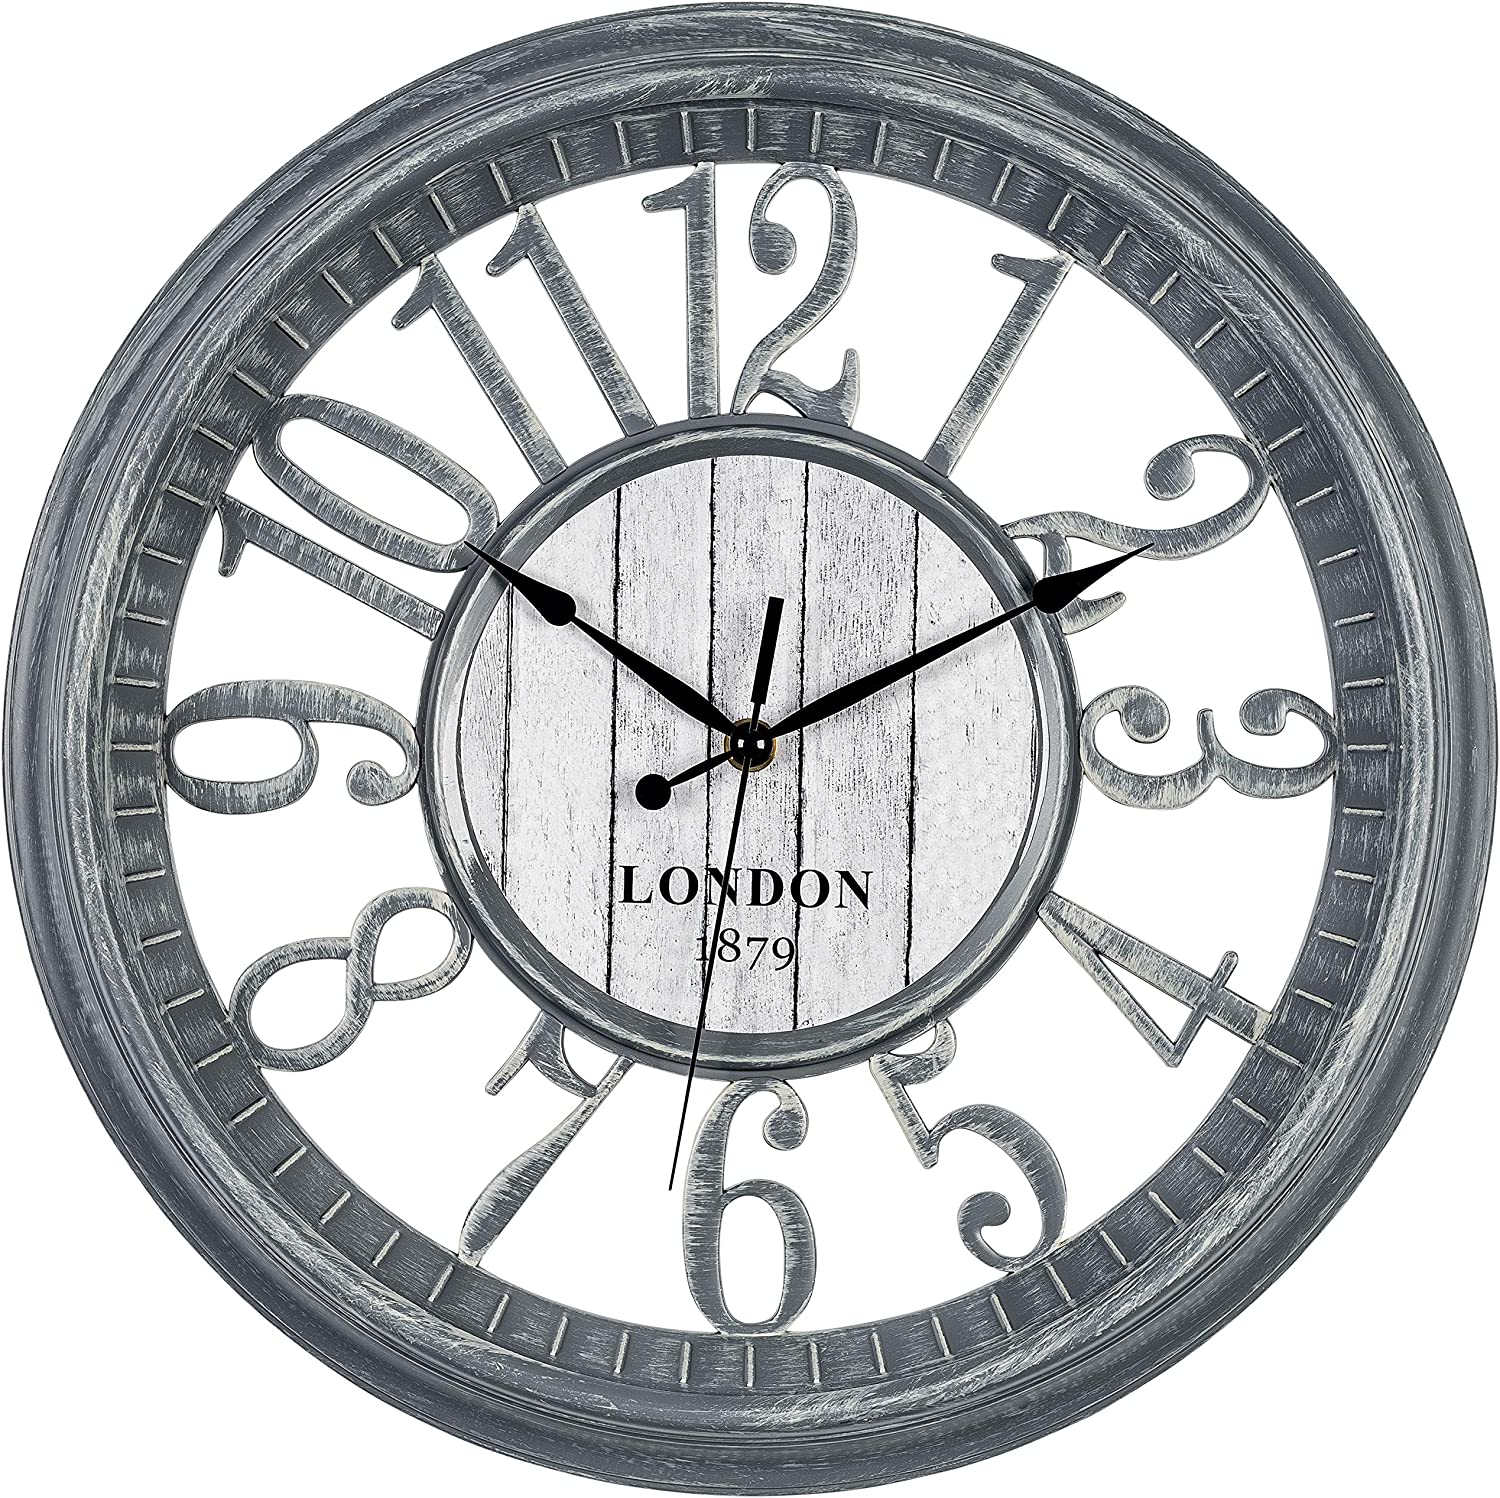 Bernhard Products Large Wall Clock 16 Inch Gray Noiseless Battery Operated Quality Quartz Rustic Farmhouse Shabby Chic Vintage Design For Kitchen Living Room Bedroom Decorative Stylish Clocks Amazon Co Uk Kitchen Home